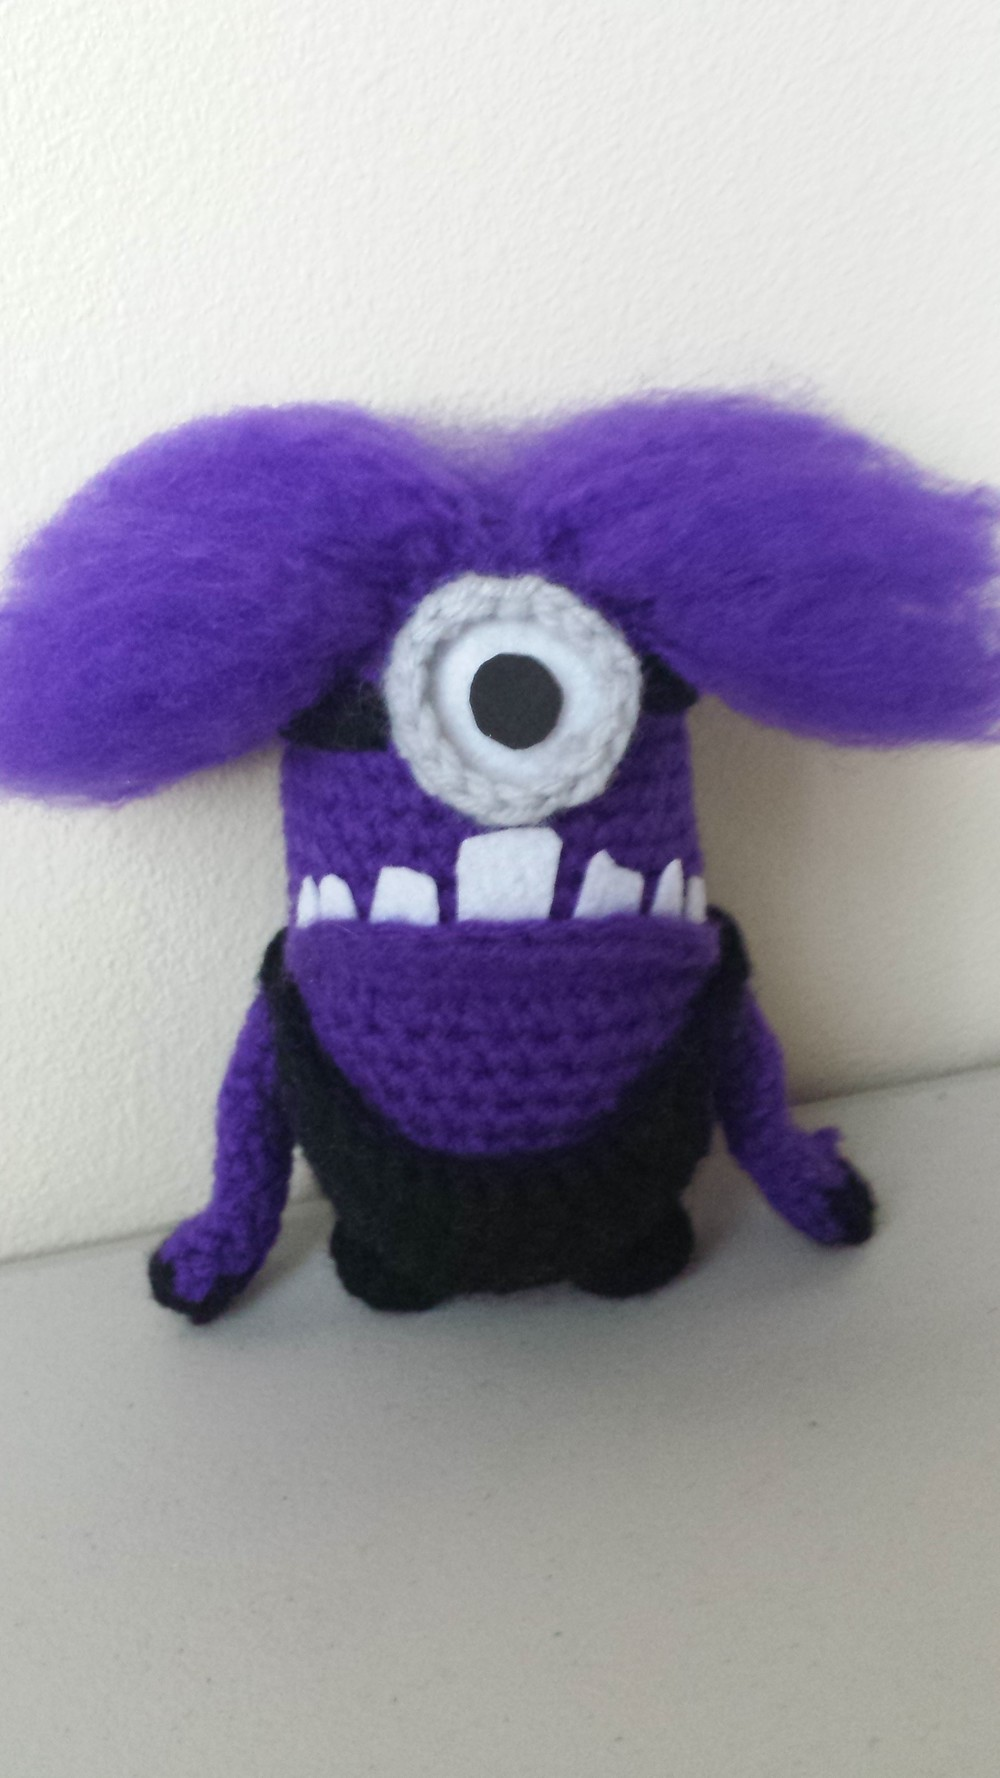 Despicable me 2 evil minion crochet hair tutorial lifted geek 20130629103111g bankloansurffo Images